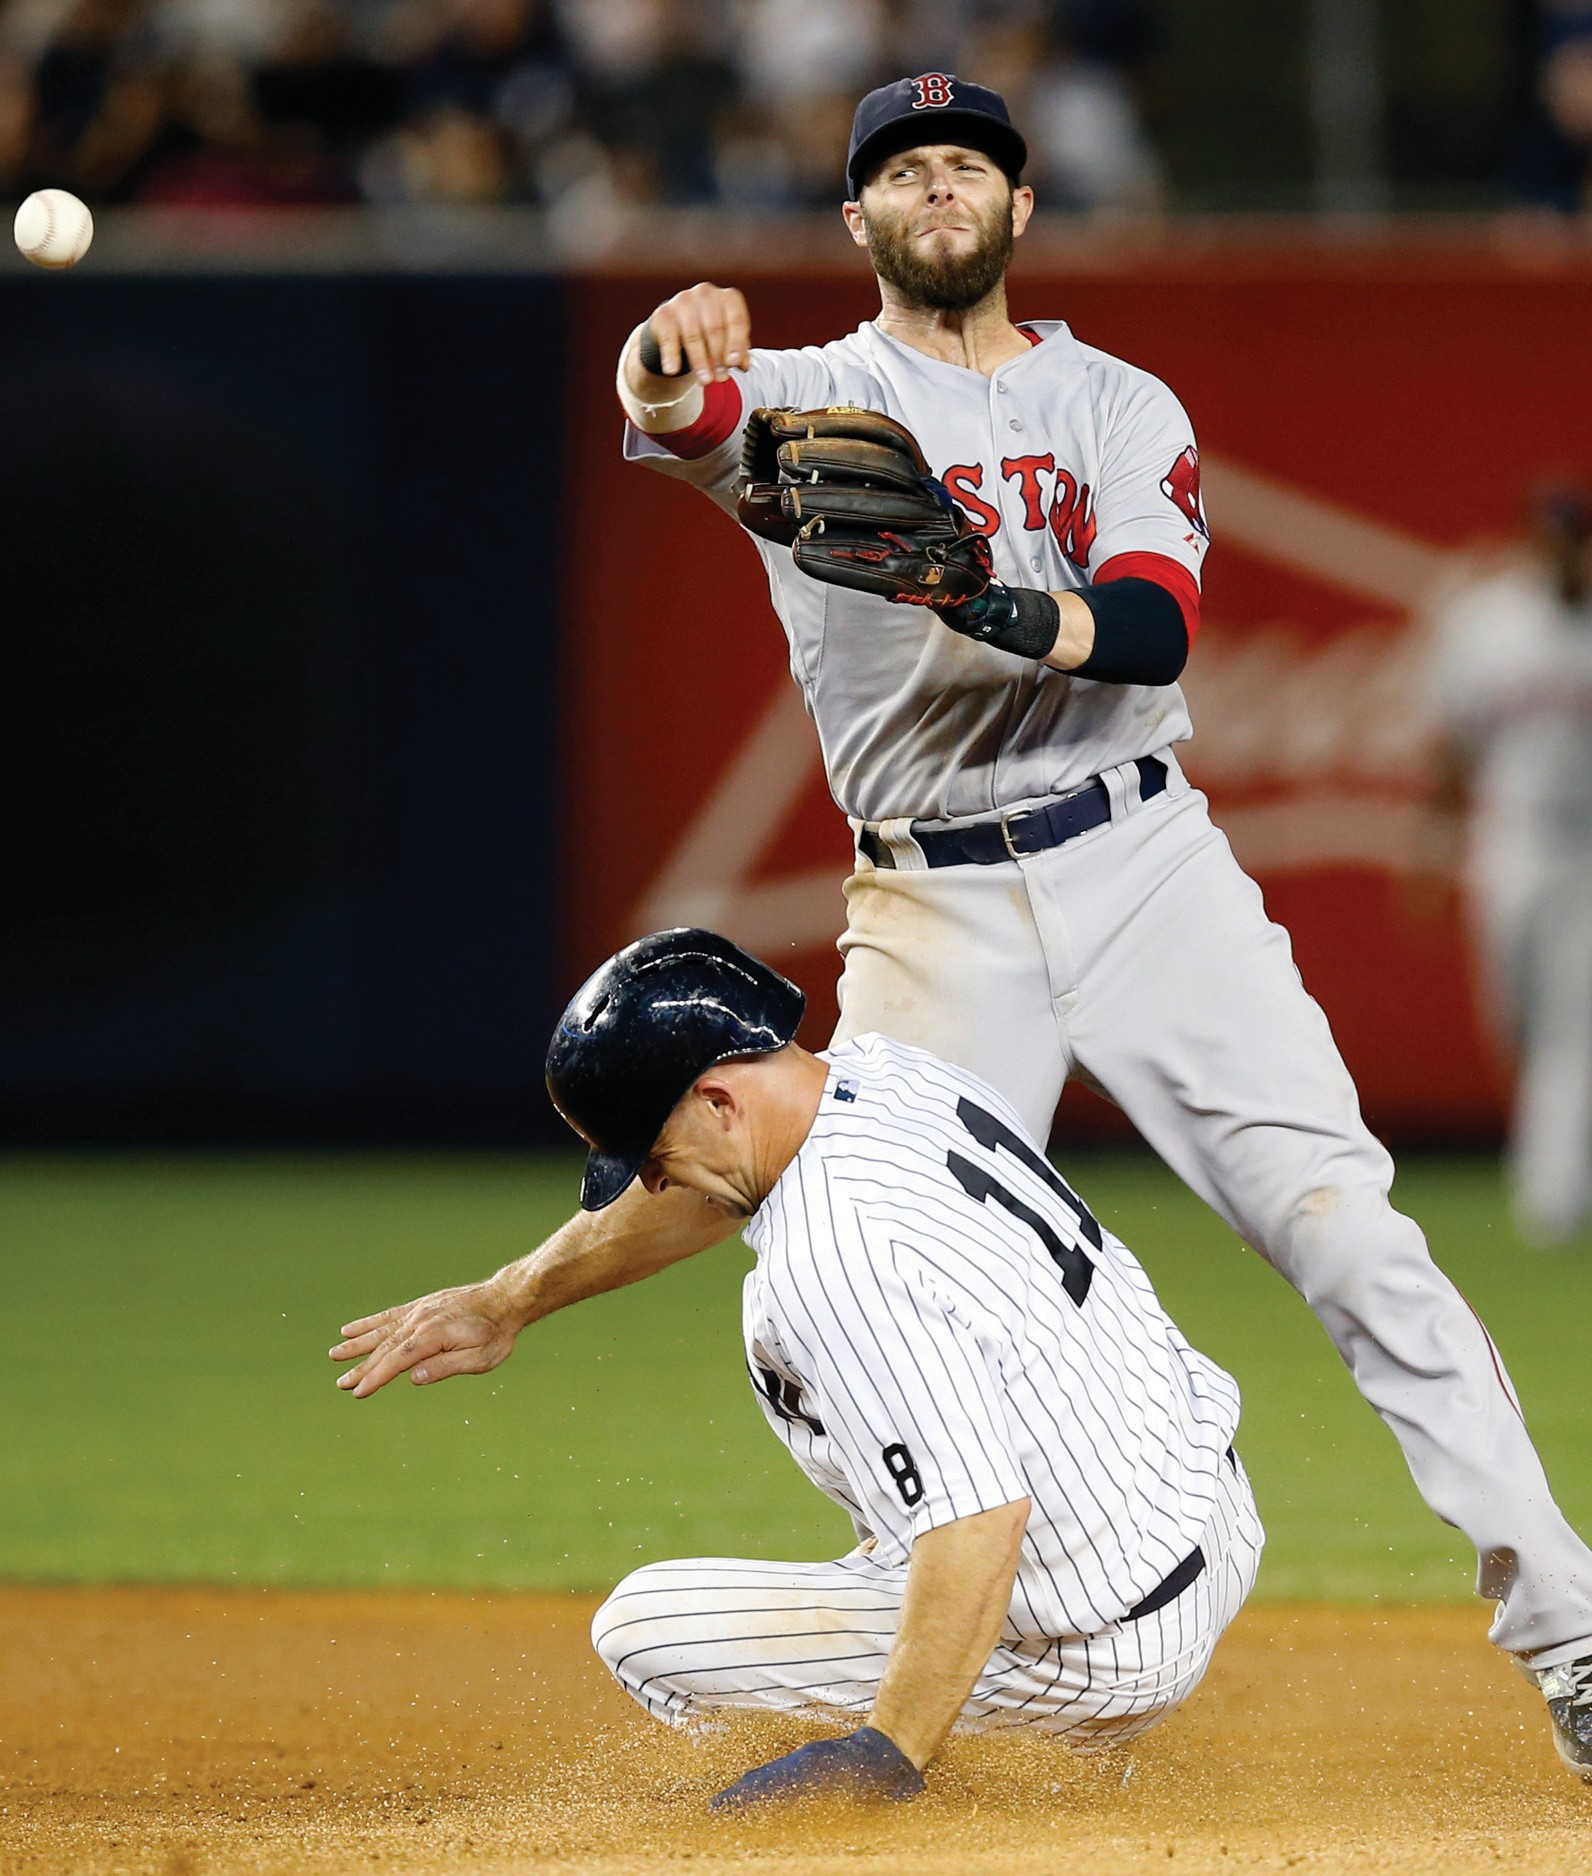 Boston Red Sox second baseman Dustin Pedroia (15) throws to first to complete a double-play after putting out New York Yankees' Brett Gardner during a baseball game in New York, Tuesday.